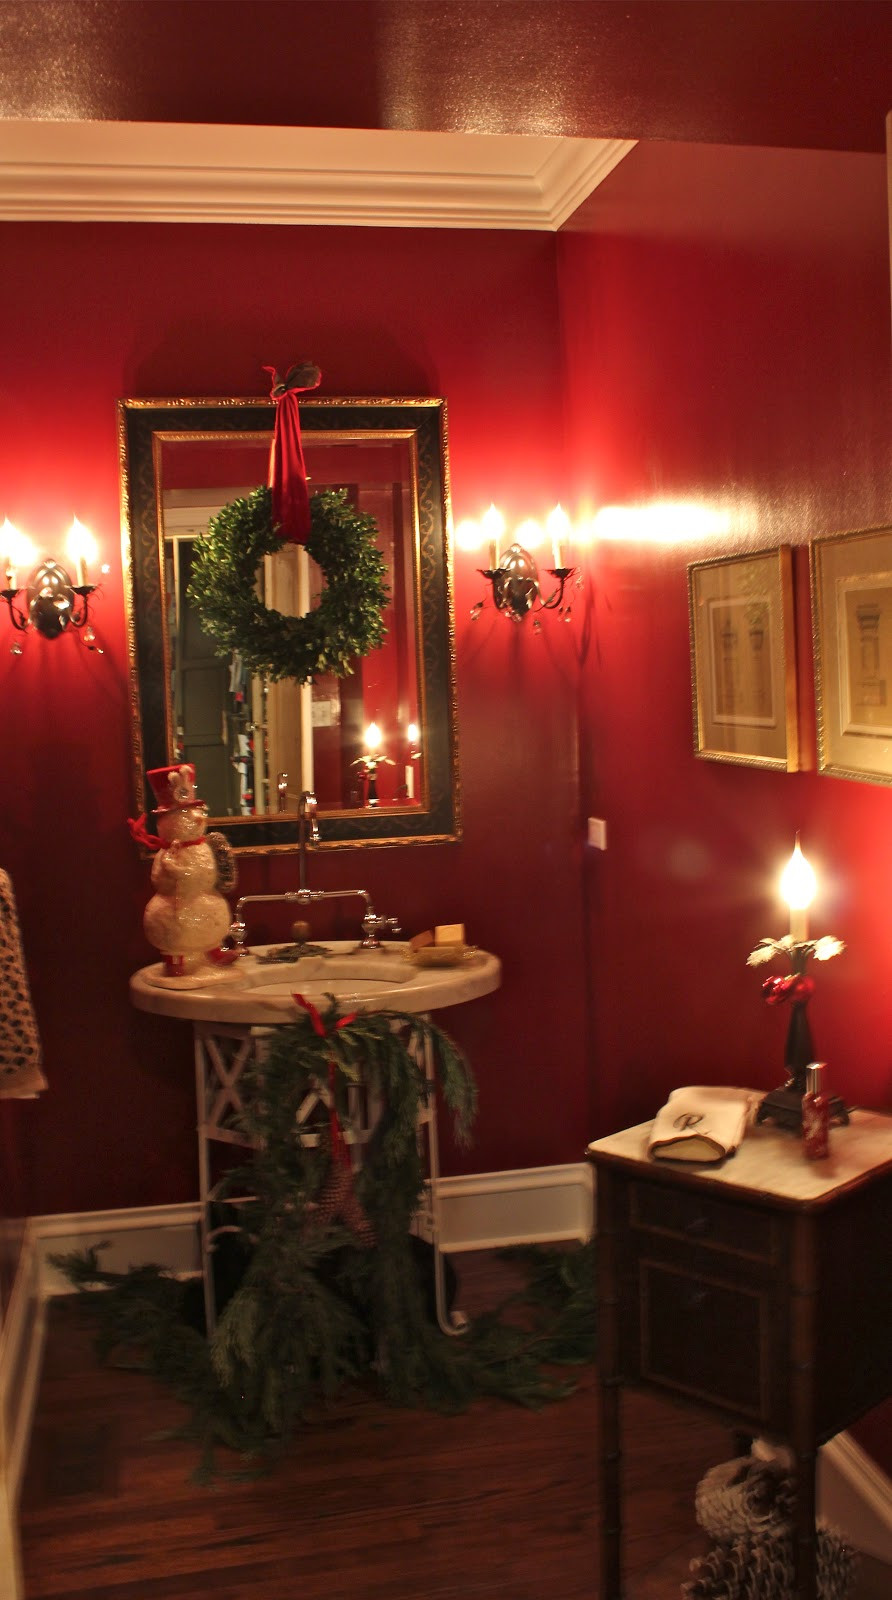 Christmas Bathroom Decorations  5th and state Our Christmas Showhouse